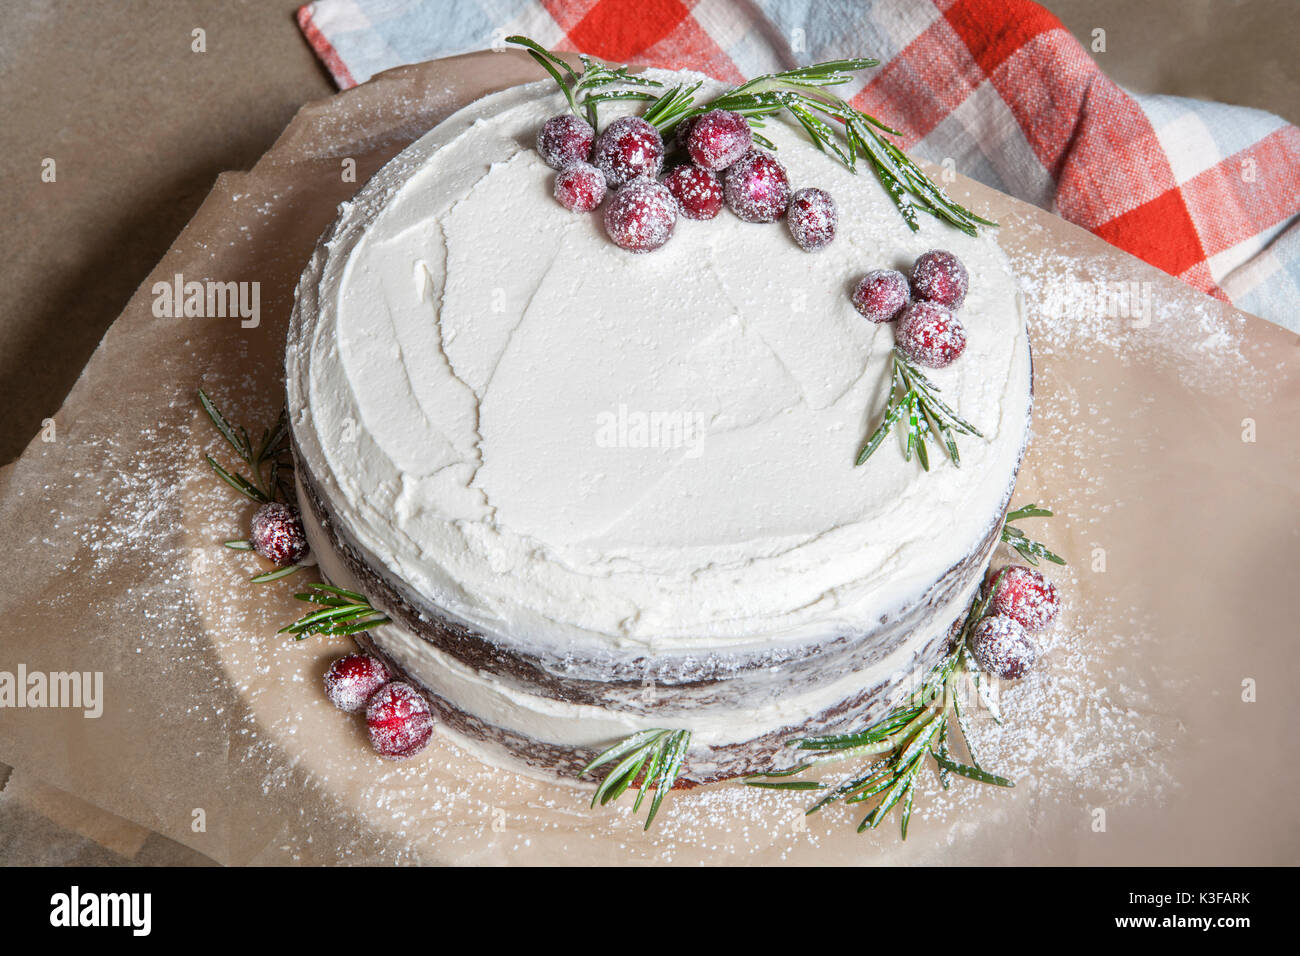 Chocolate Layer Cake with vanilla Buttercream Icing and Candied Cranberries - Stock Image